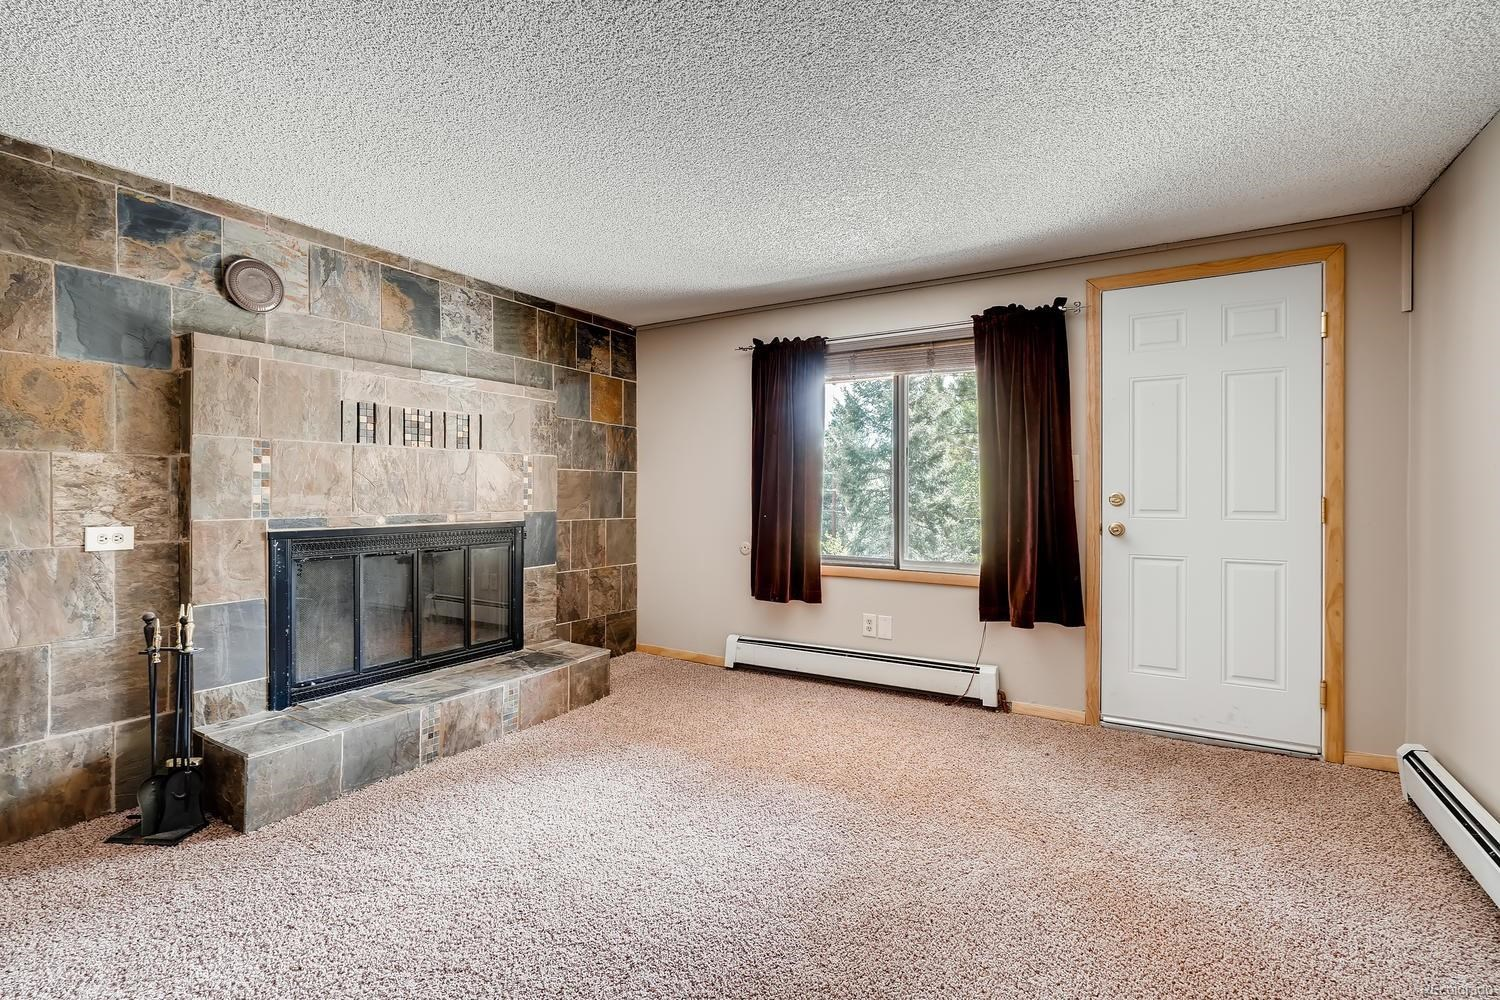 MLS# 8376760 - 17 - 30915 Walter Drive, Conifer, CO 80433